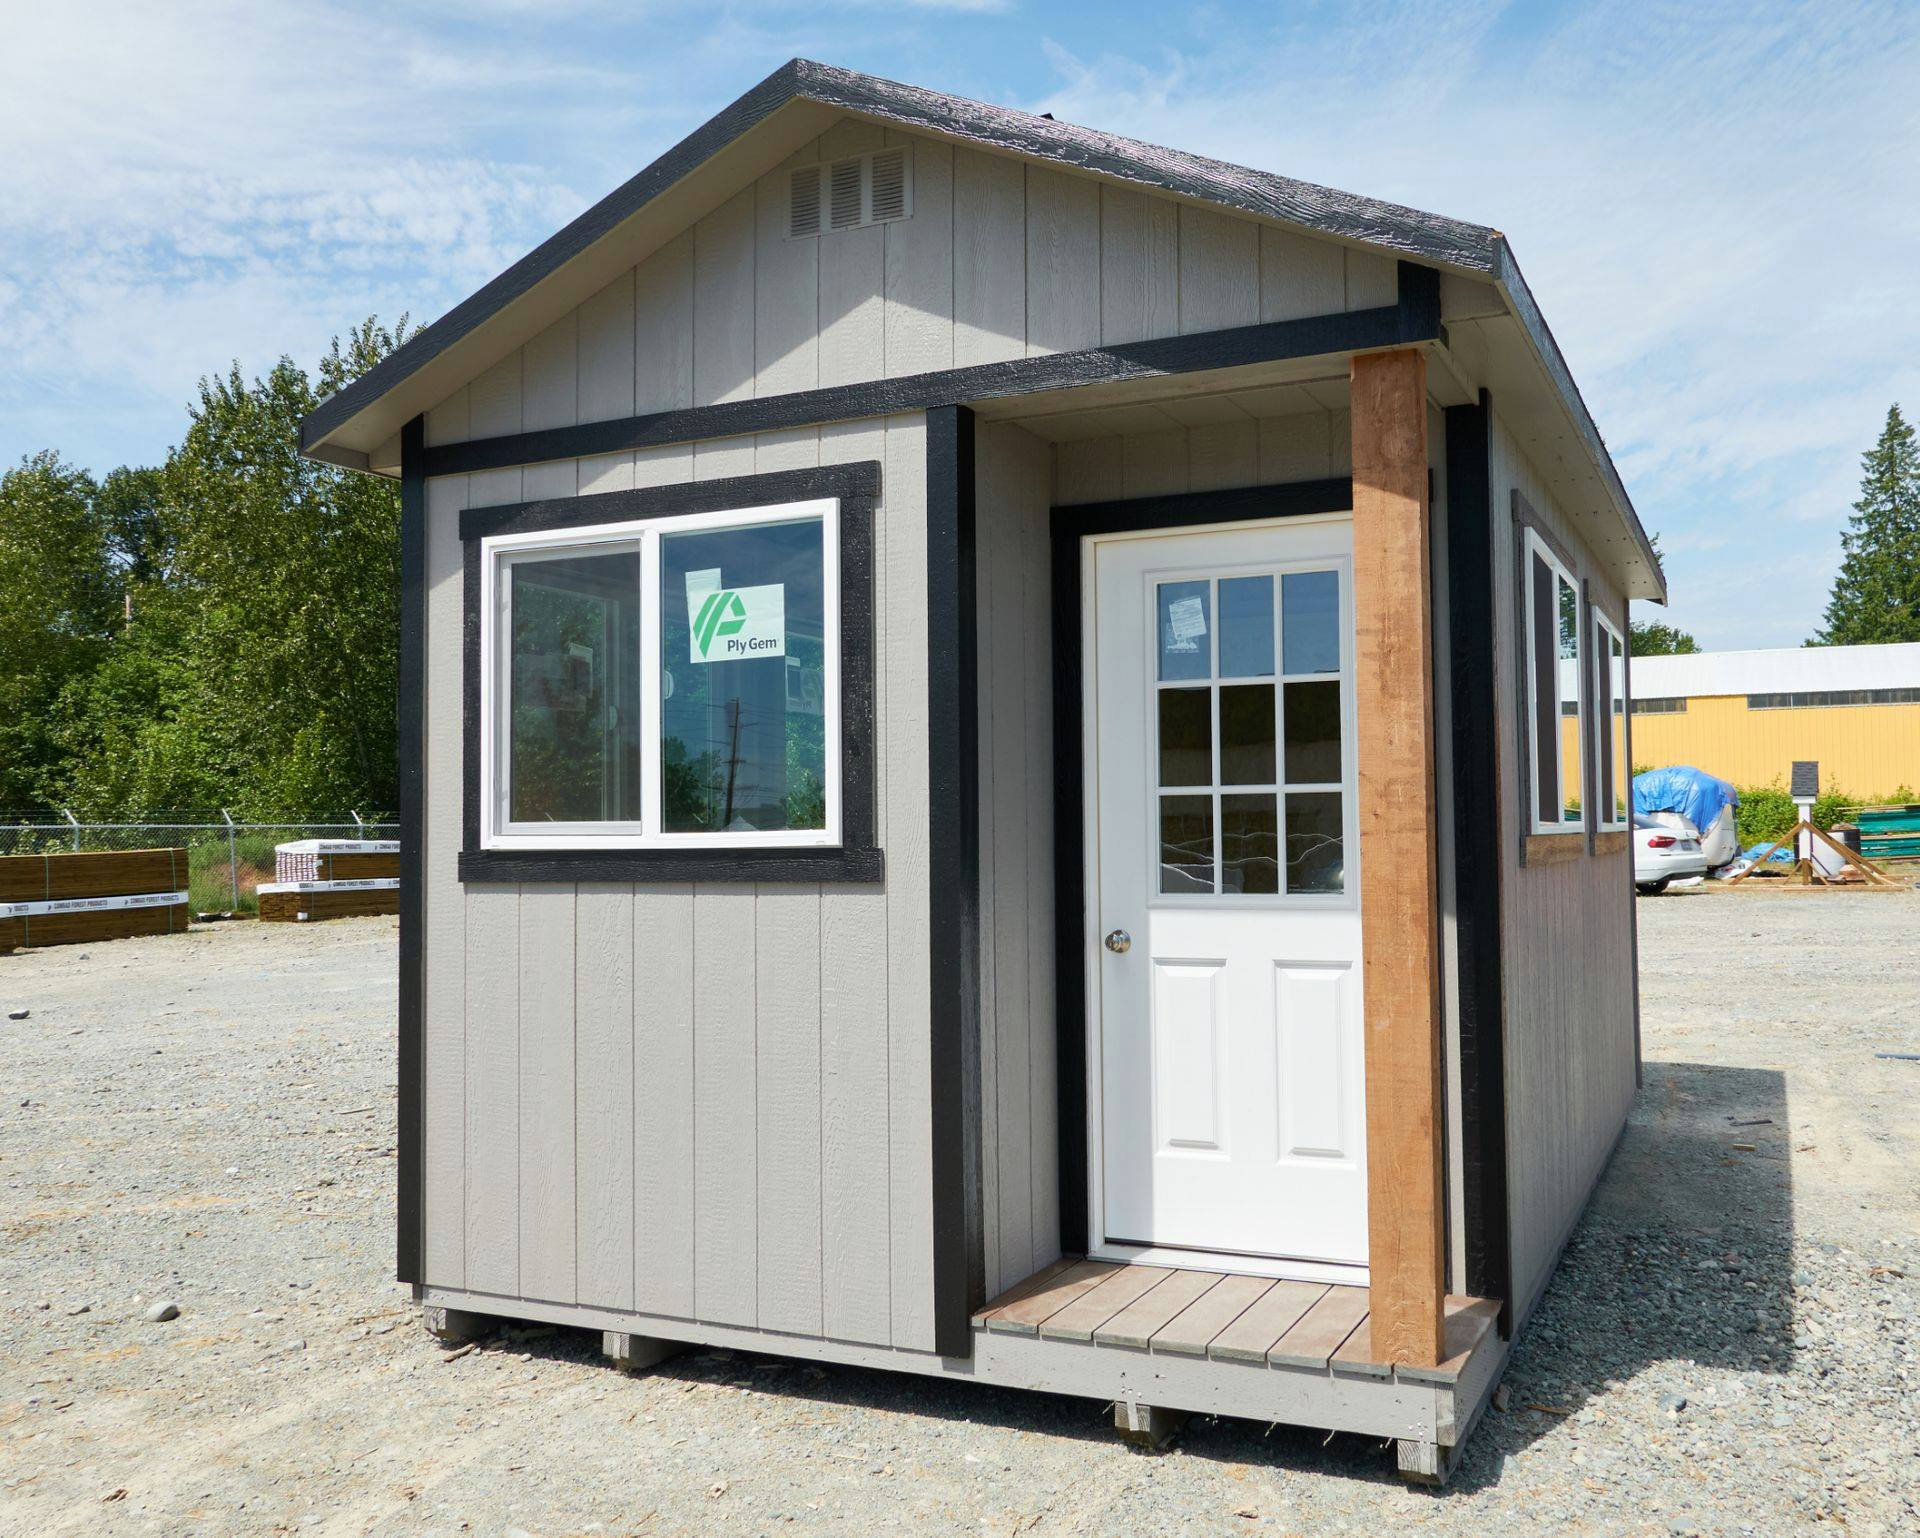 Light Gray Cabin with Dark Trim and Small Porch | Heritage Portable Buildings | Portable Cabin | Playhouse